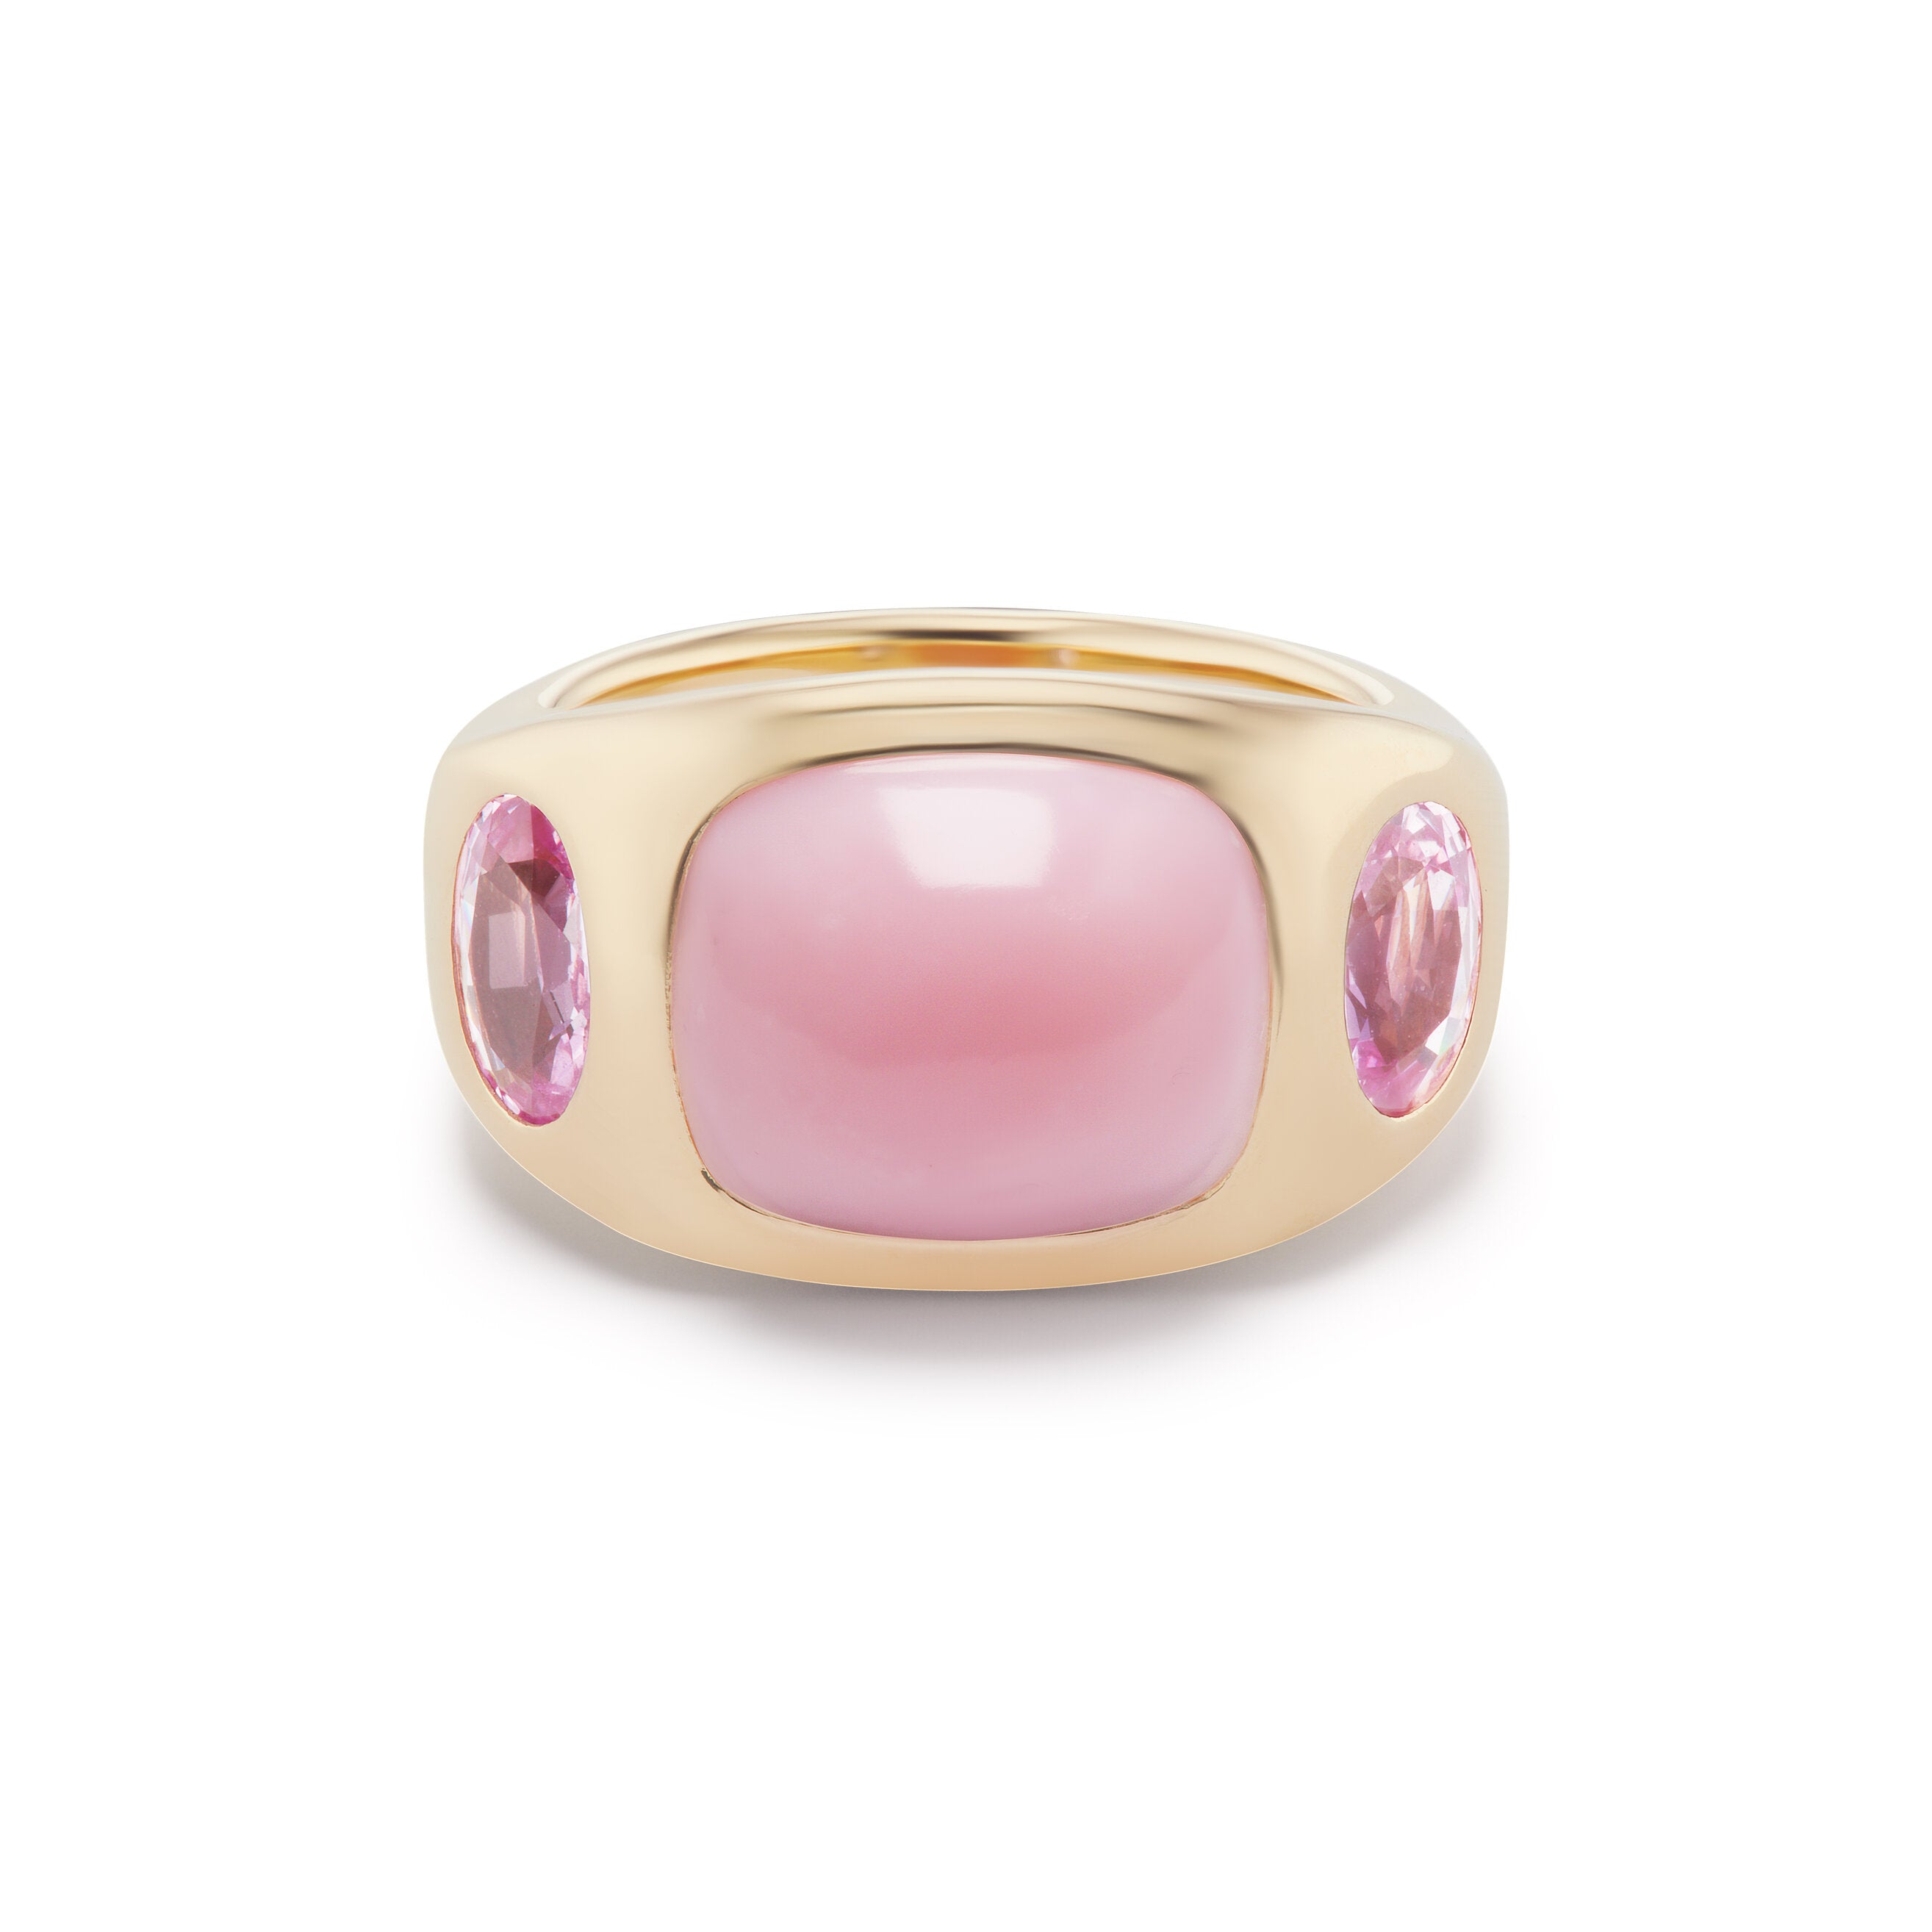 Pink Opal Cabochon Gypsy with Oval Pink Sapphire Sides